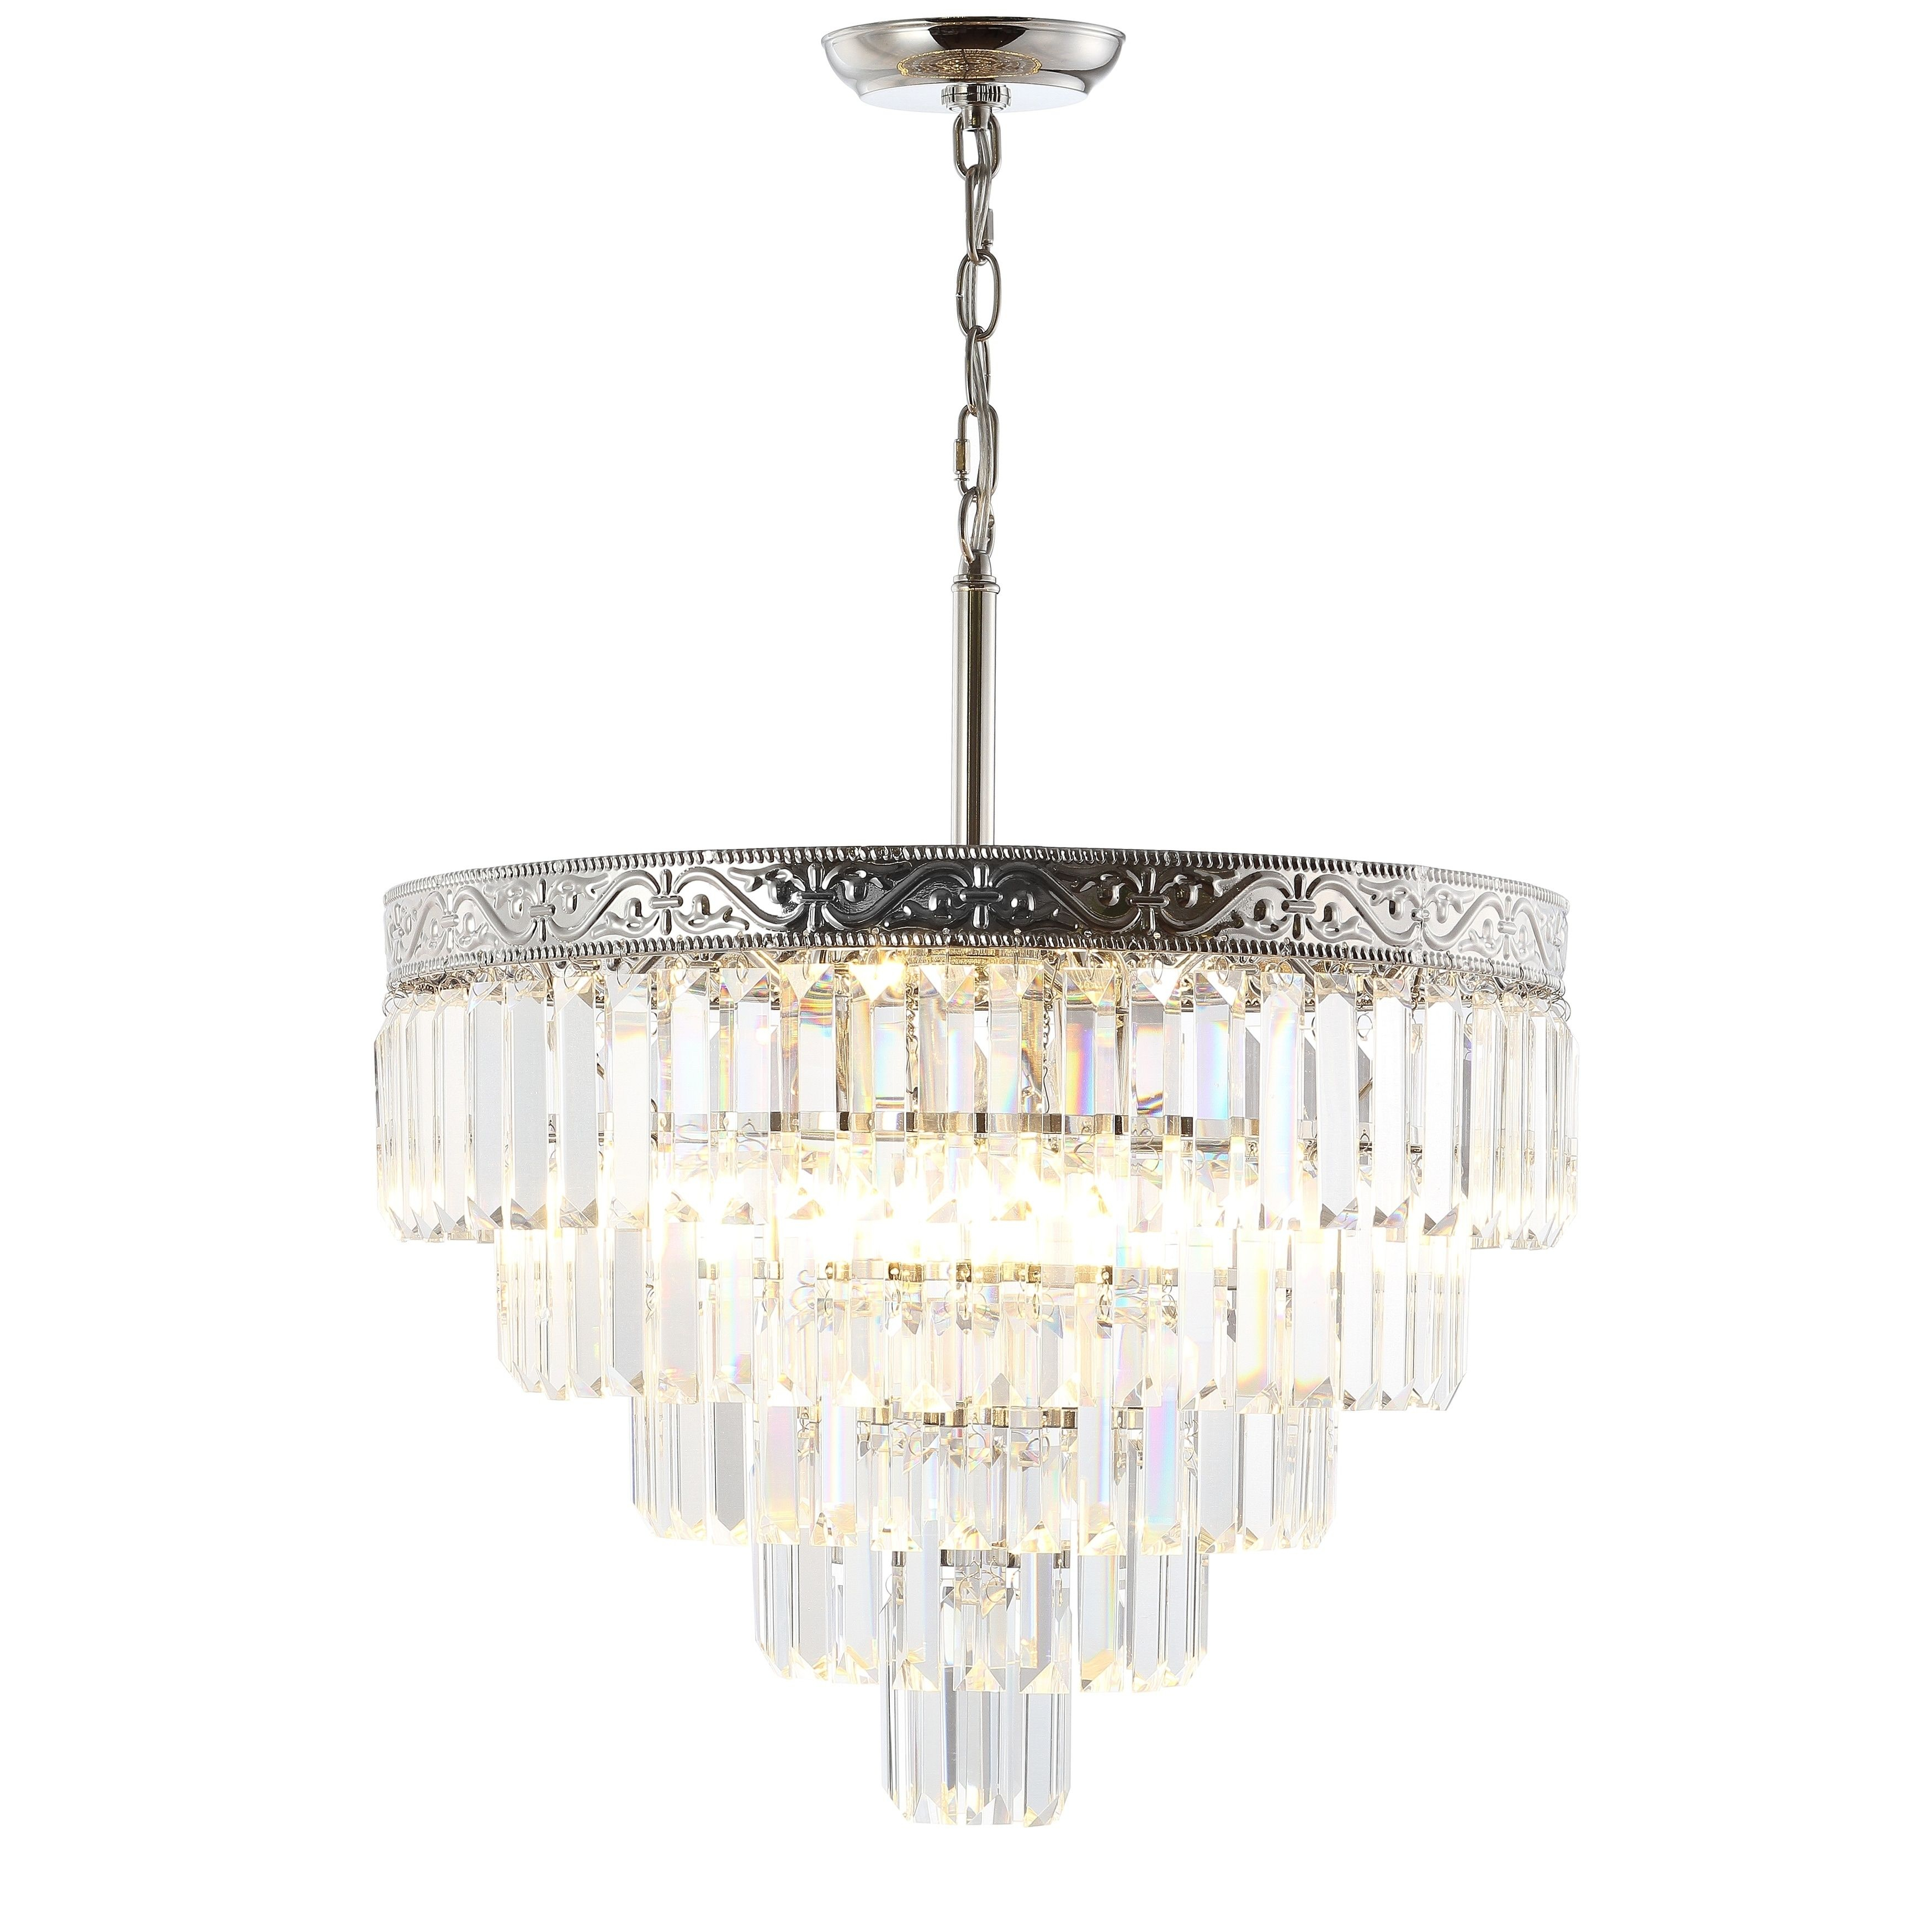 Jonathan Y Wyatt 20 4 Light Crystal Led Chandelier, Polished Within Abel 5 Light Drum Chandeliers (Image 19 of 30)